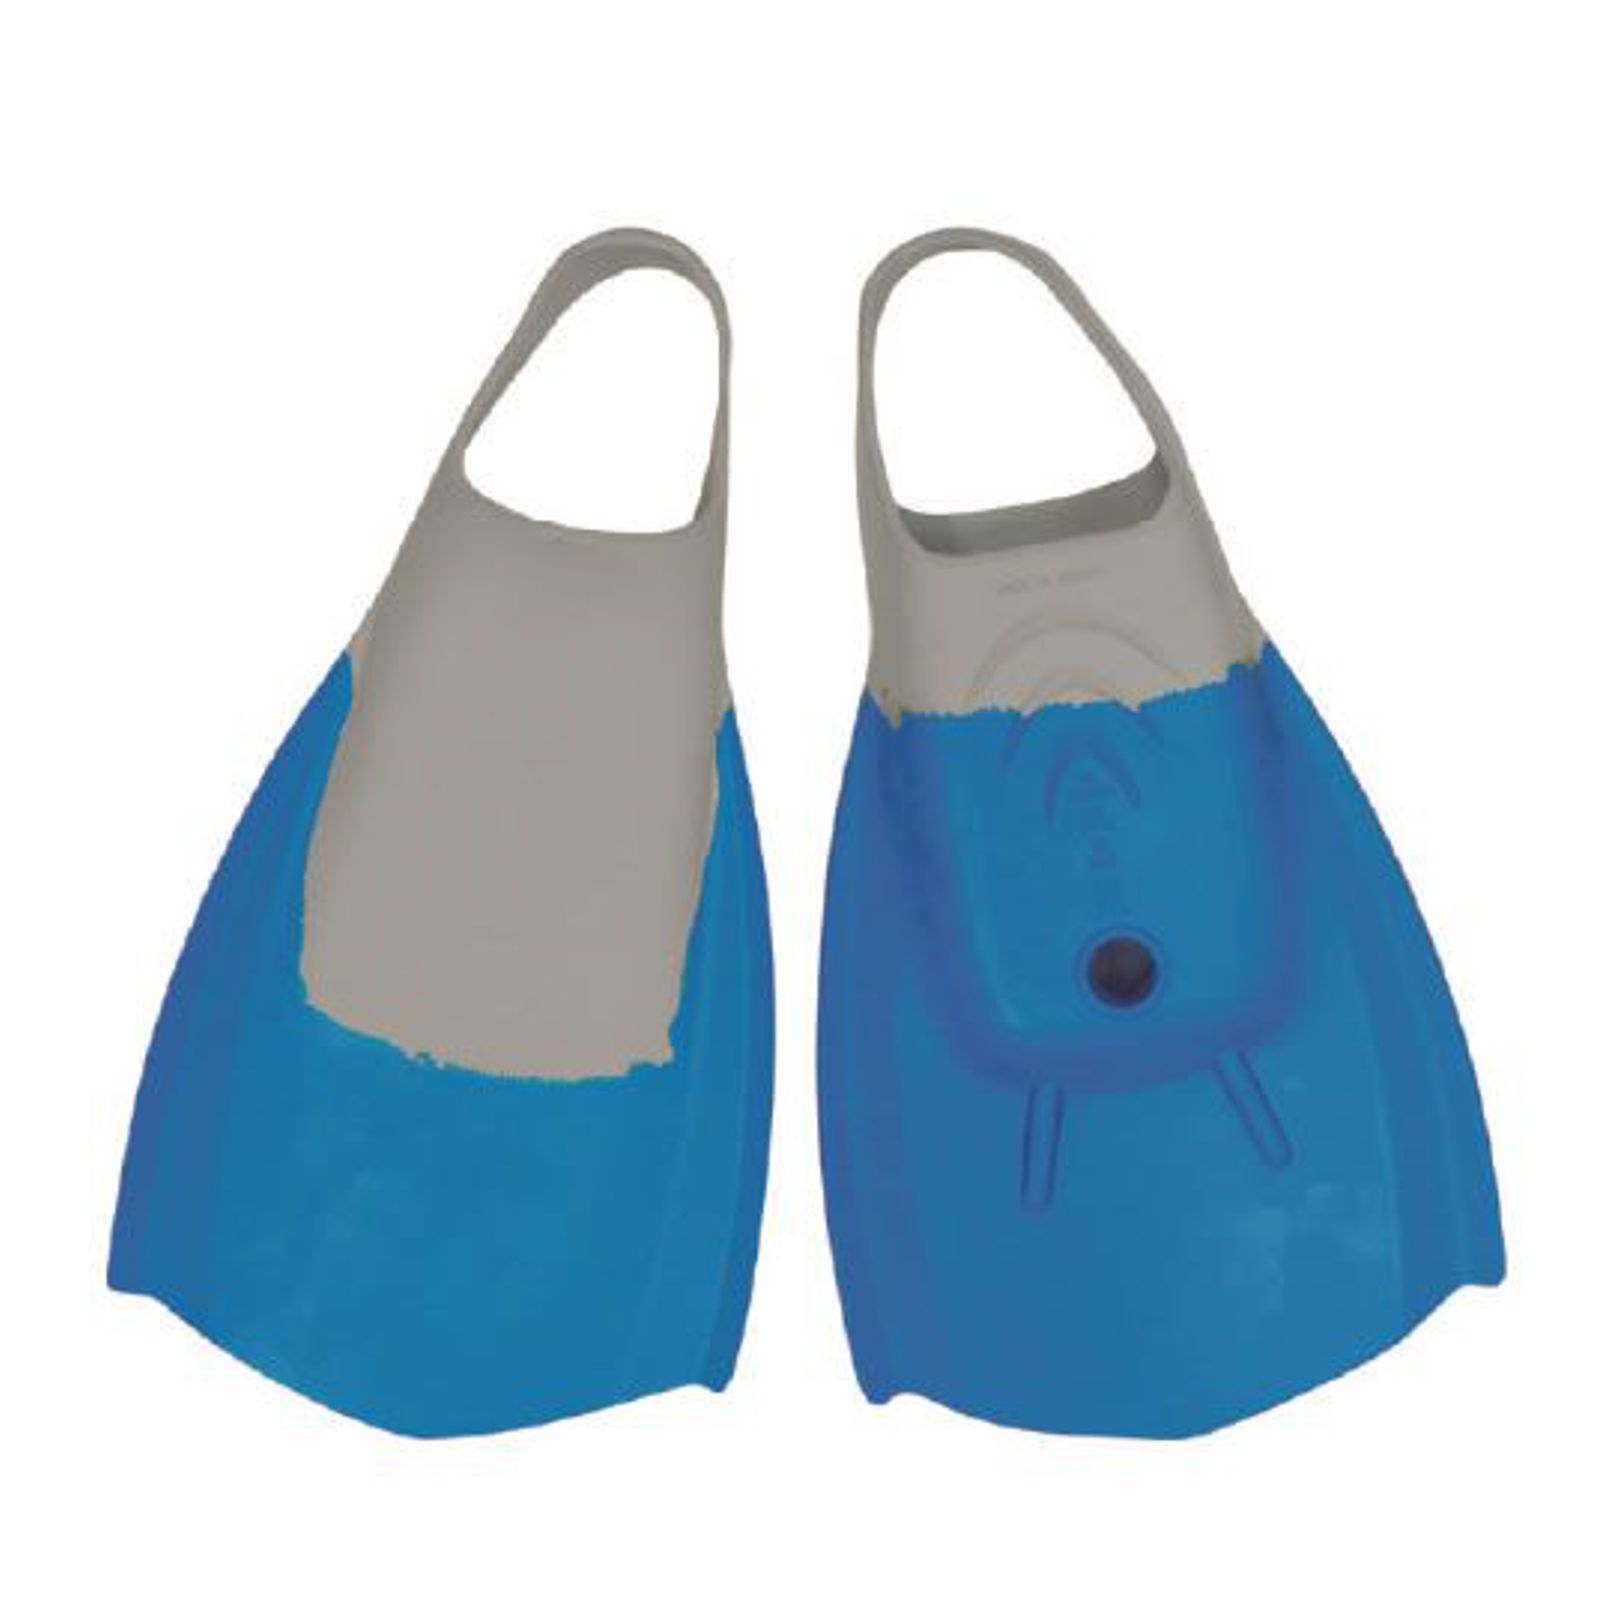 WAVE POWER Bodyboard Flossen M 38-40 Blau Grau